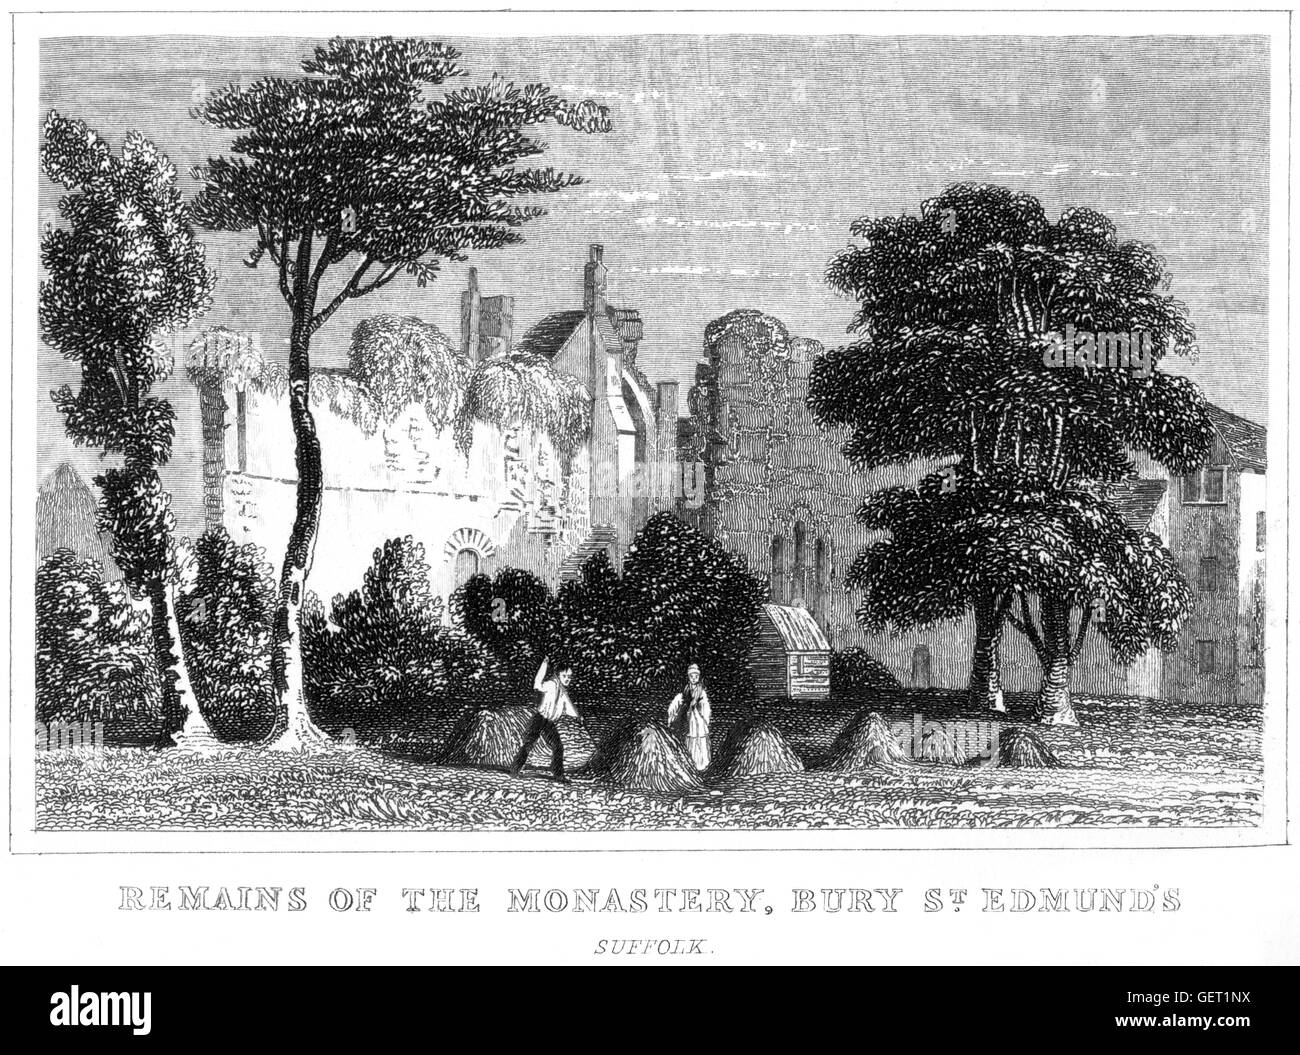 An engraving of the Remains of the Monastery, Bury St. Edmunds, Suffolk scanned at high resolution from a book printed - Stock Image